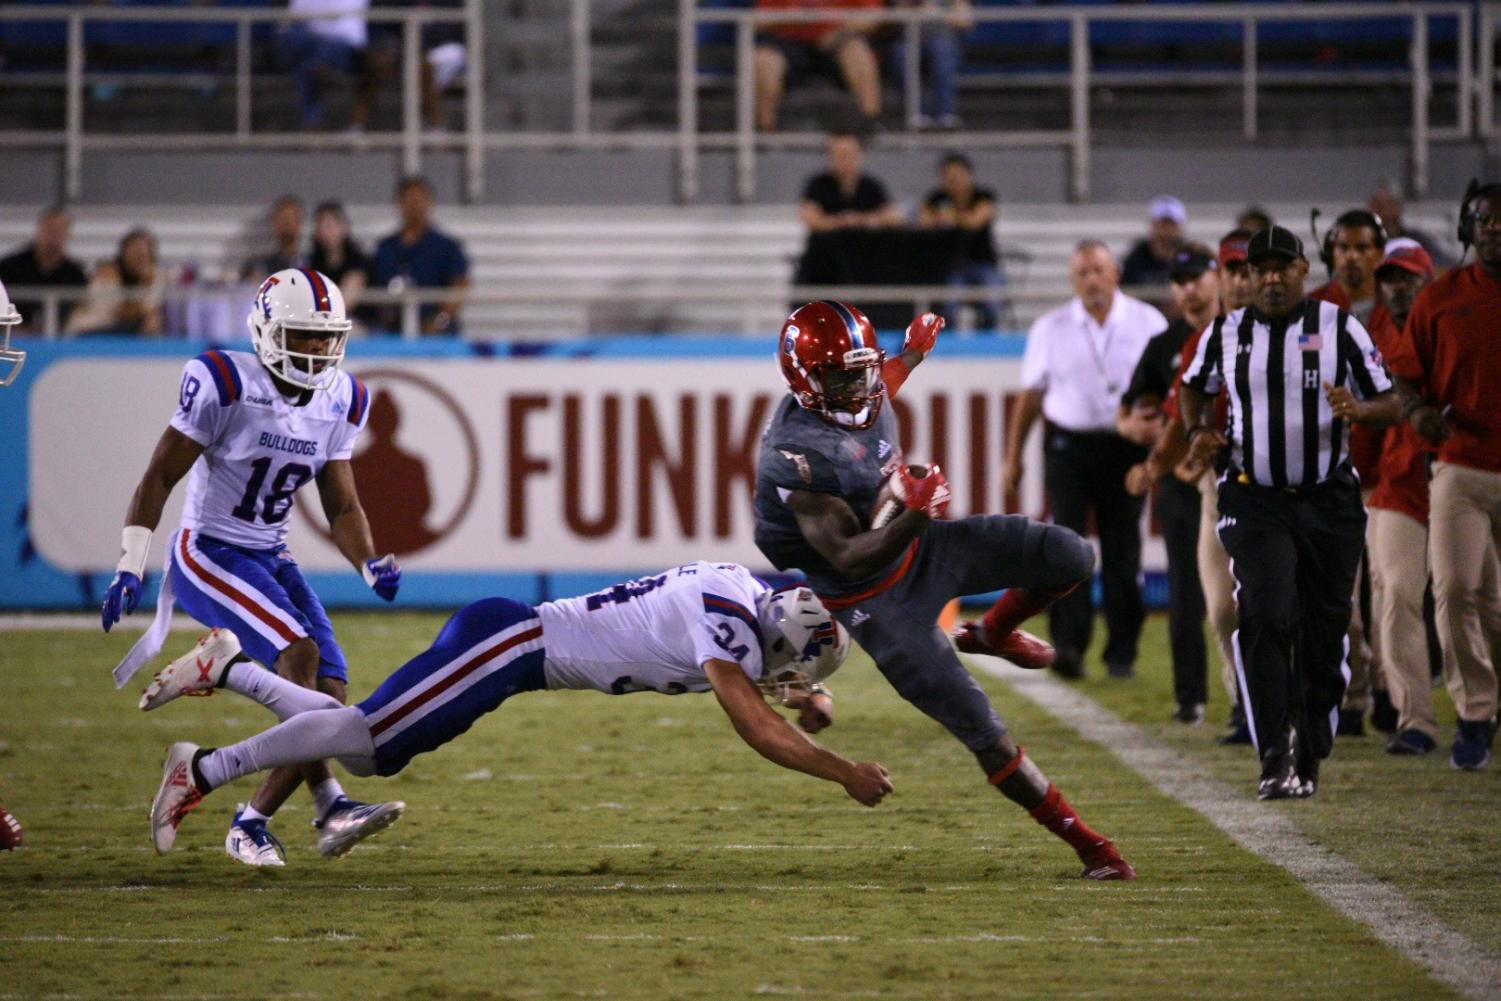 FAU redshirt junior running back Kerrith Whyte Jr. (6) attempts to run down the sideline against LA Tech and narrowly misses getting tackled. Photo by: Pierce Herrmann